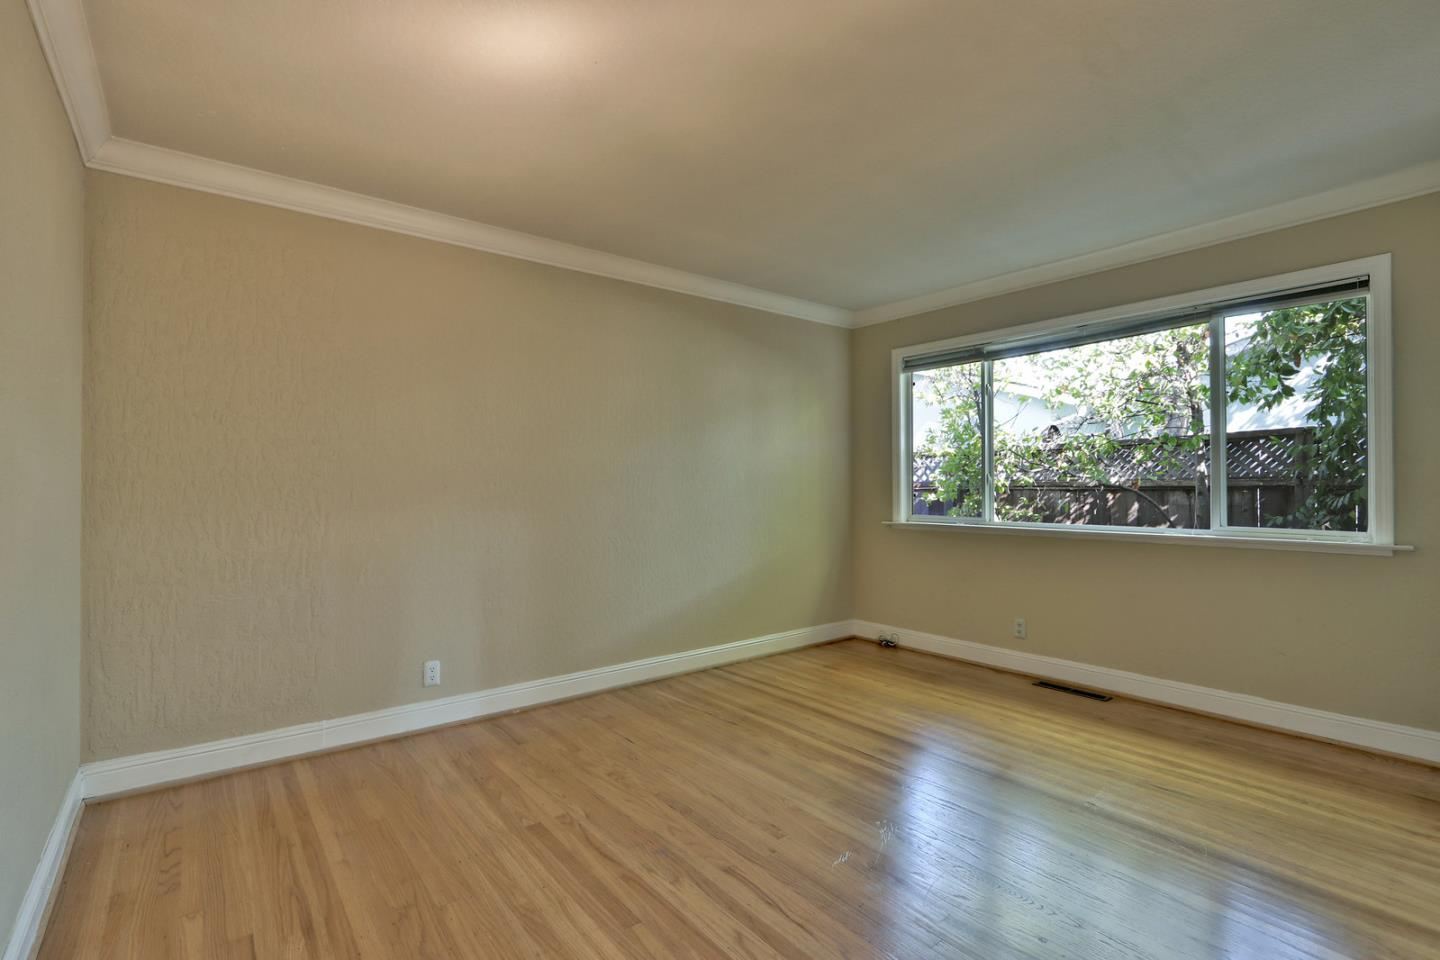 2496 Villanova Road San Jose, CA 95130 - MLS #: ML81722280